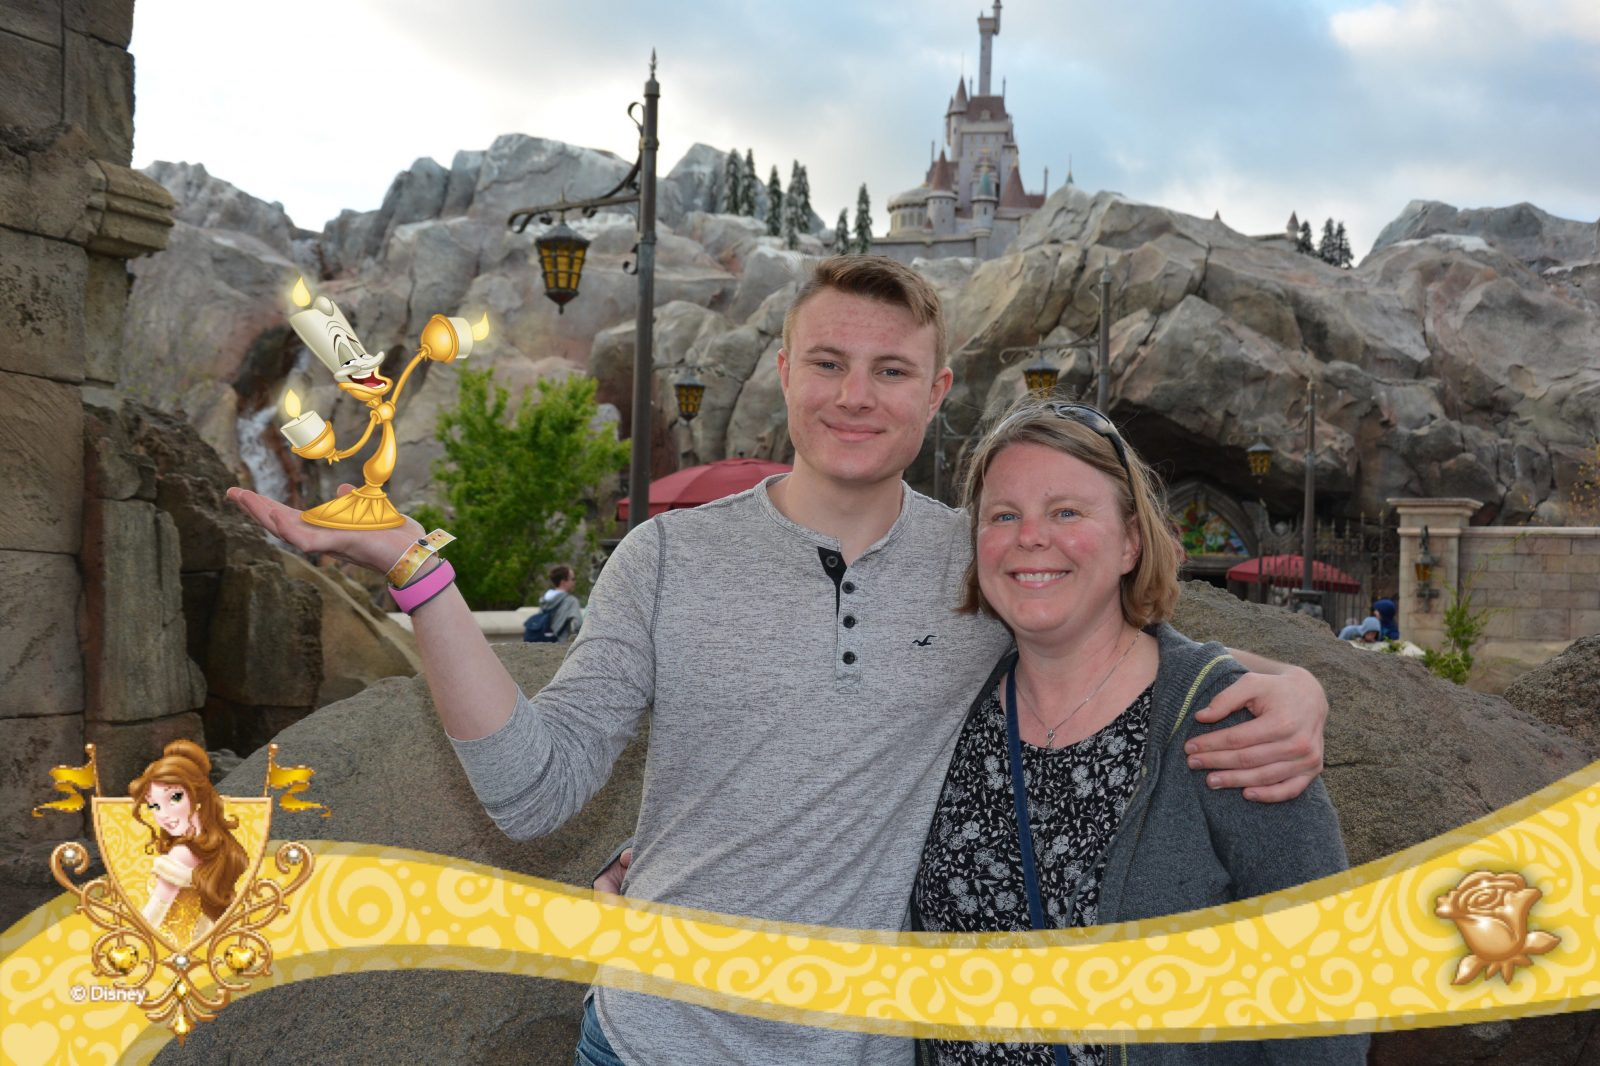 Mom and son at Be Our Guest in Magic Kingdom